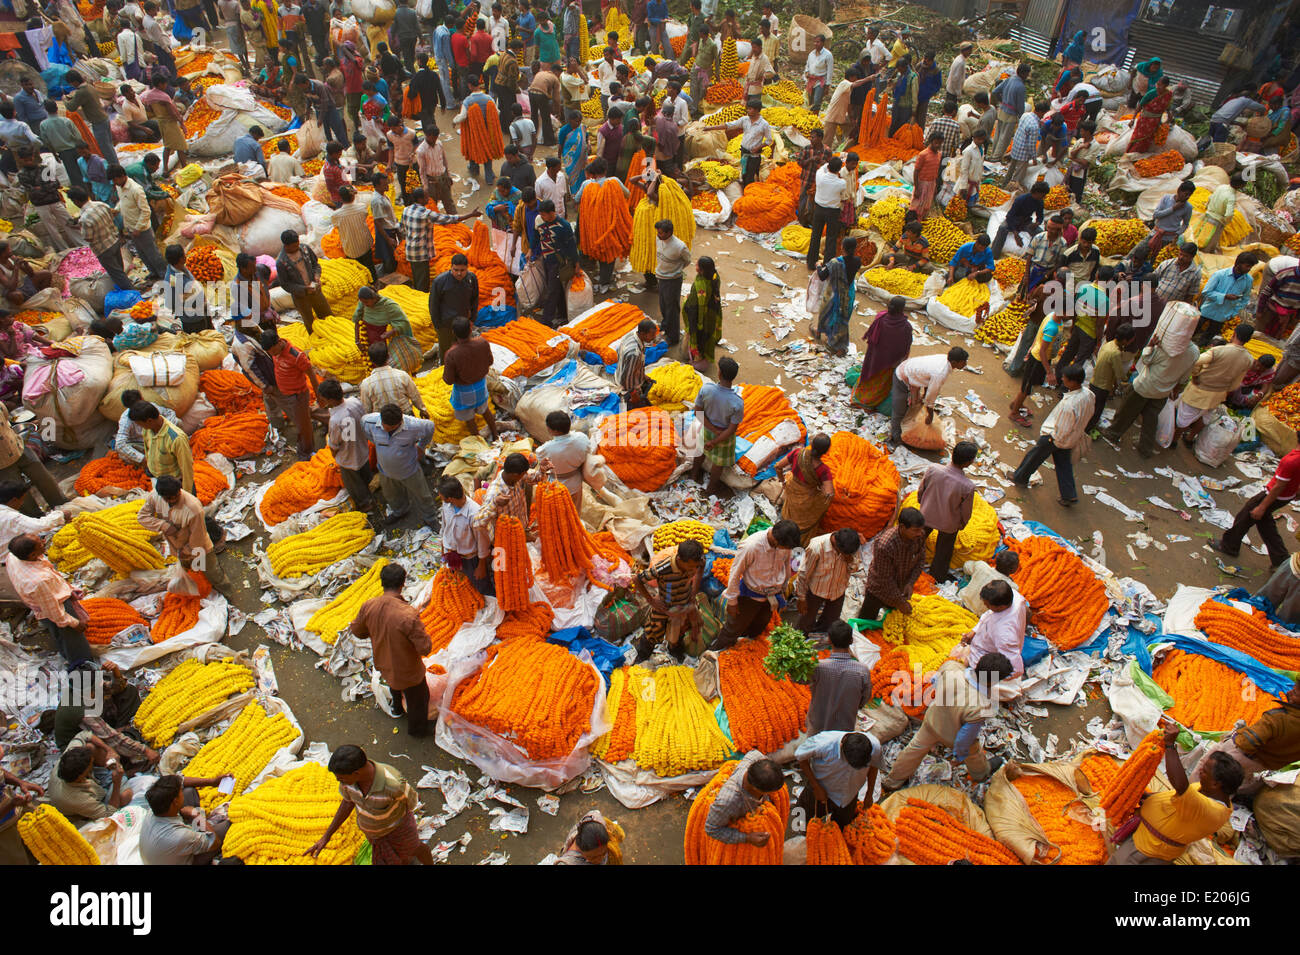 La India, Bengala Occidental, Kolkata, Calcuta, el mercado de flores Mullik Ghat Imagen De Stock